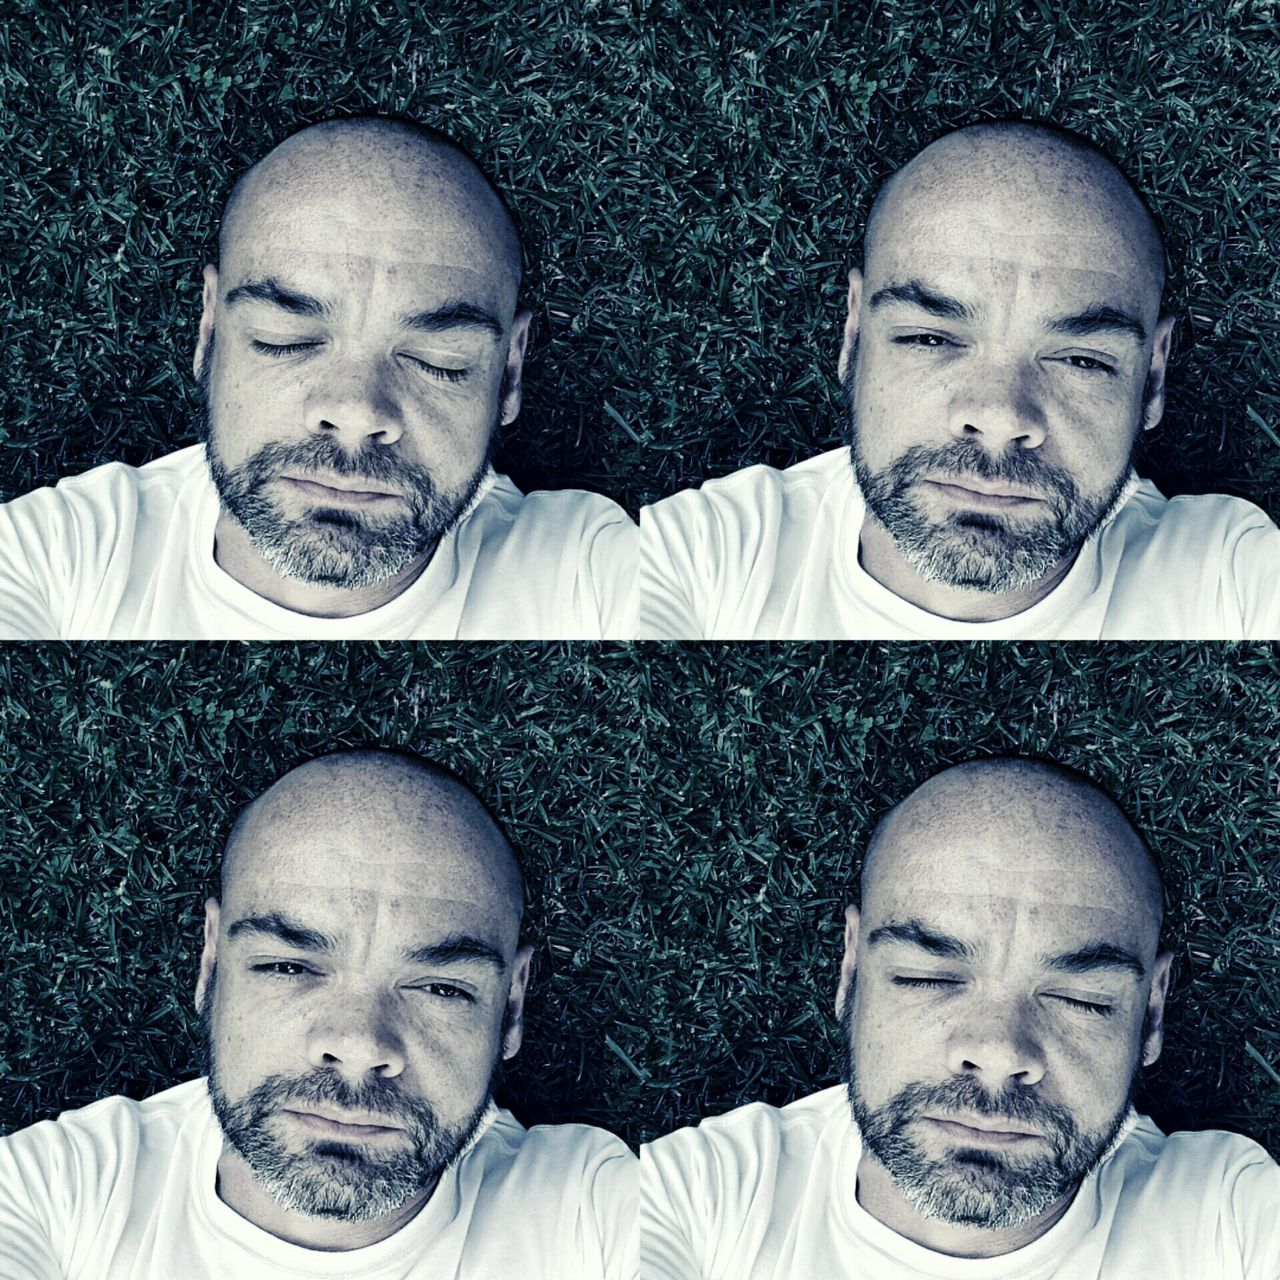 shaved head, completely bald, lying down, humor, eyes closed, men, multiple image, adult, beard, group of people, adults only, only men, human face, portrait, human body part, headshot, fun, screaming, people, conflict, making a face, young adult, close-up, outdoors, day